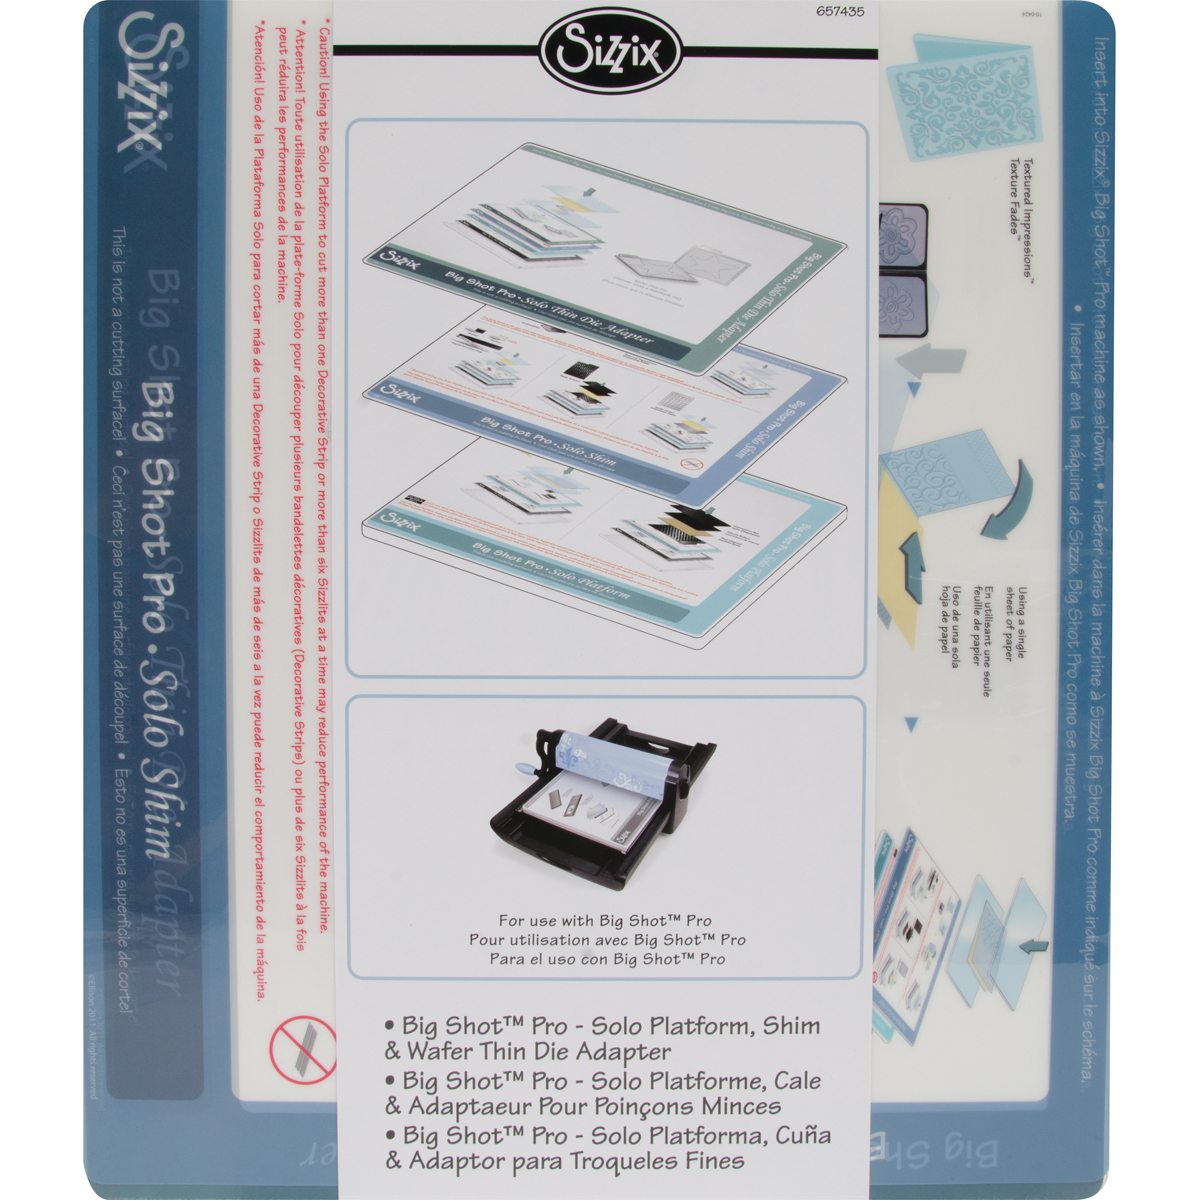 Sizzix Big Shot Pro Accessories